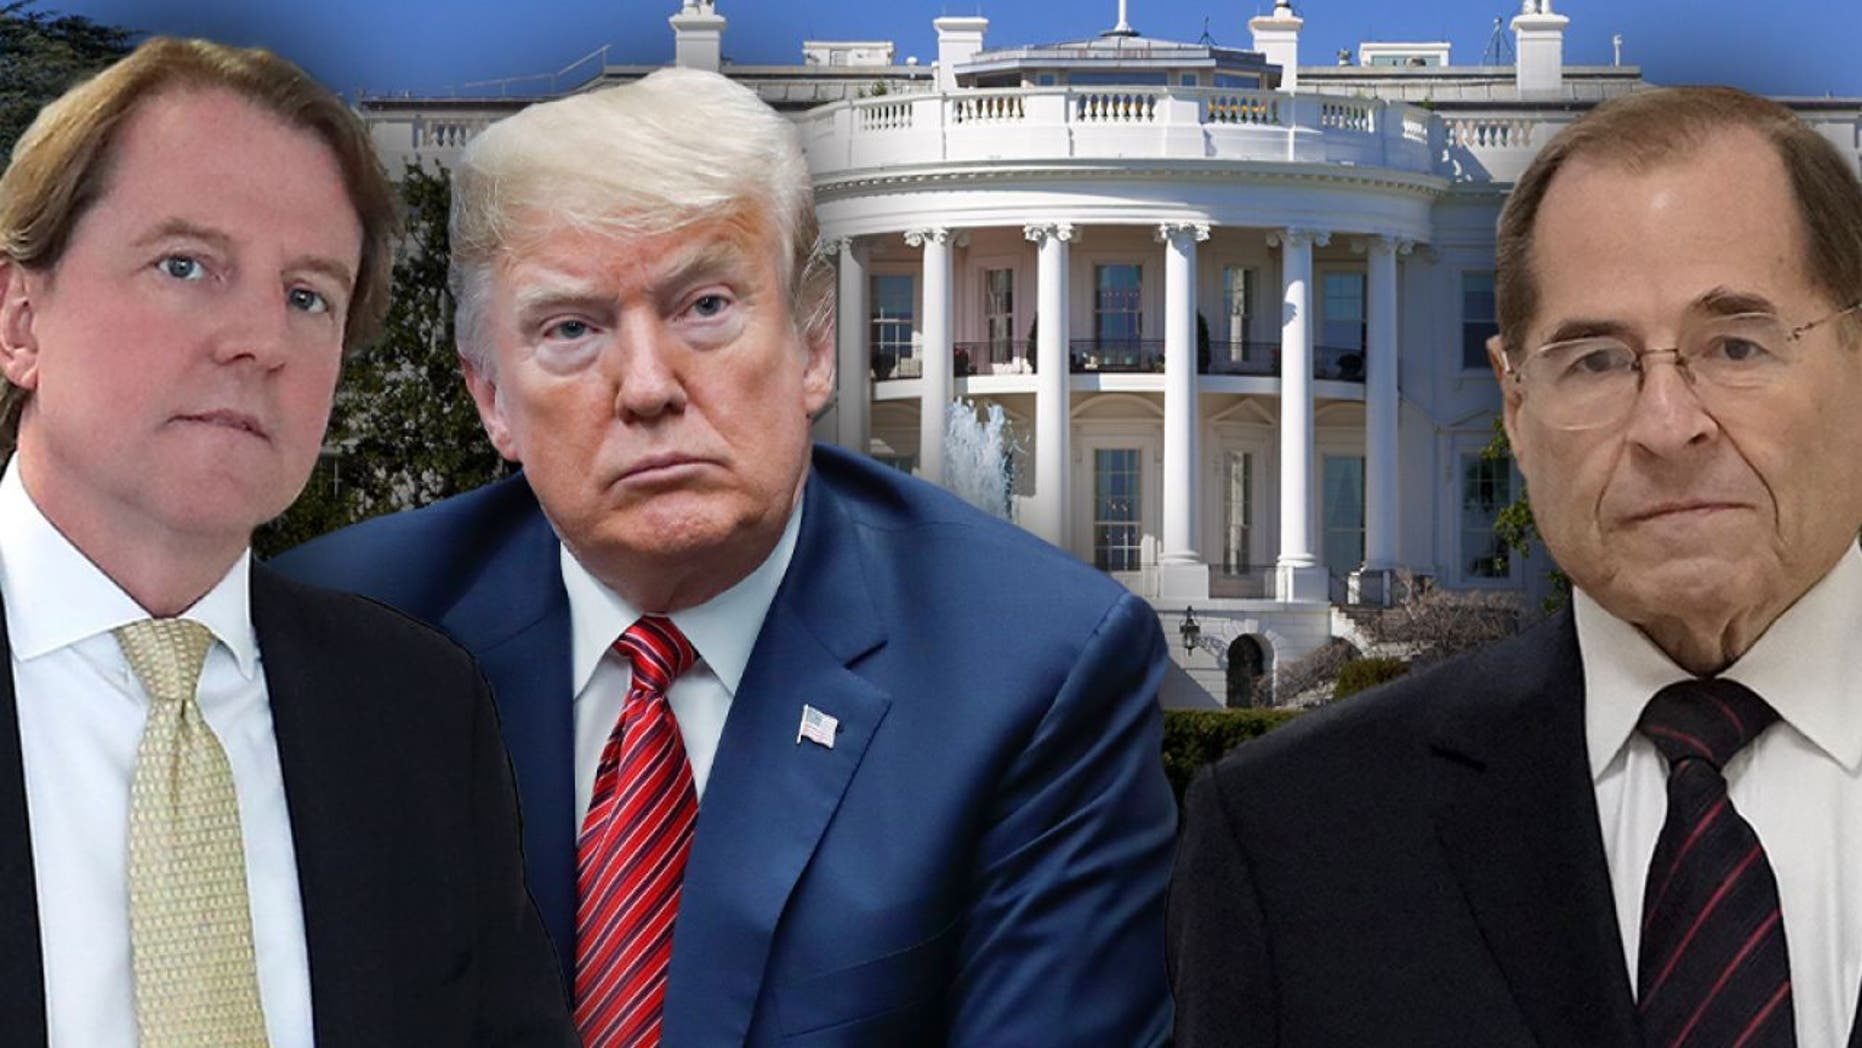 Westlake Legal Group McGahnTrumpNadler122419 Democrats raise possibility of new articles of impeachment against Trump fox-news/columns/fox-news-first fox news fnc/us fnc cbe58753-7976-5940-a8a5-b31ccdef1114 article